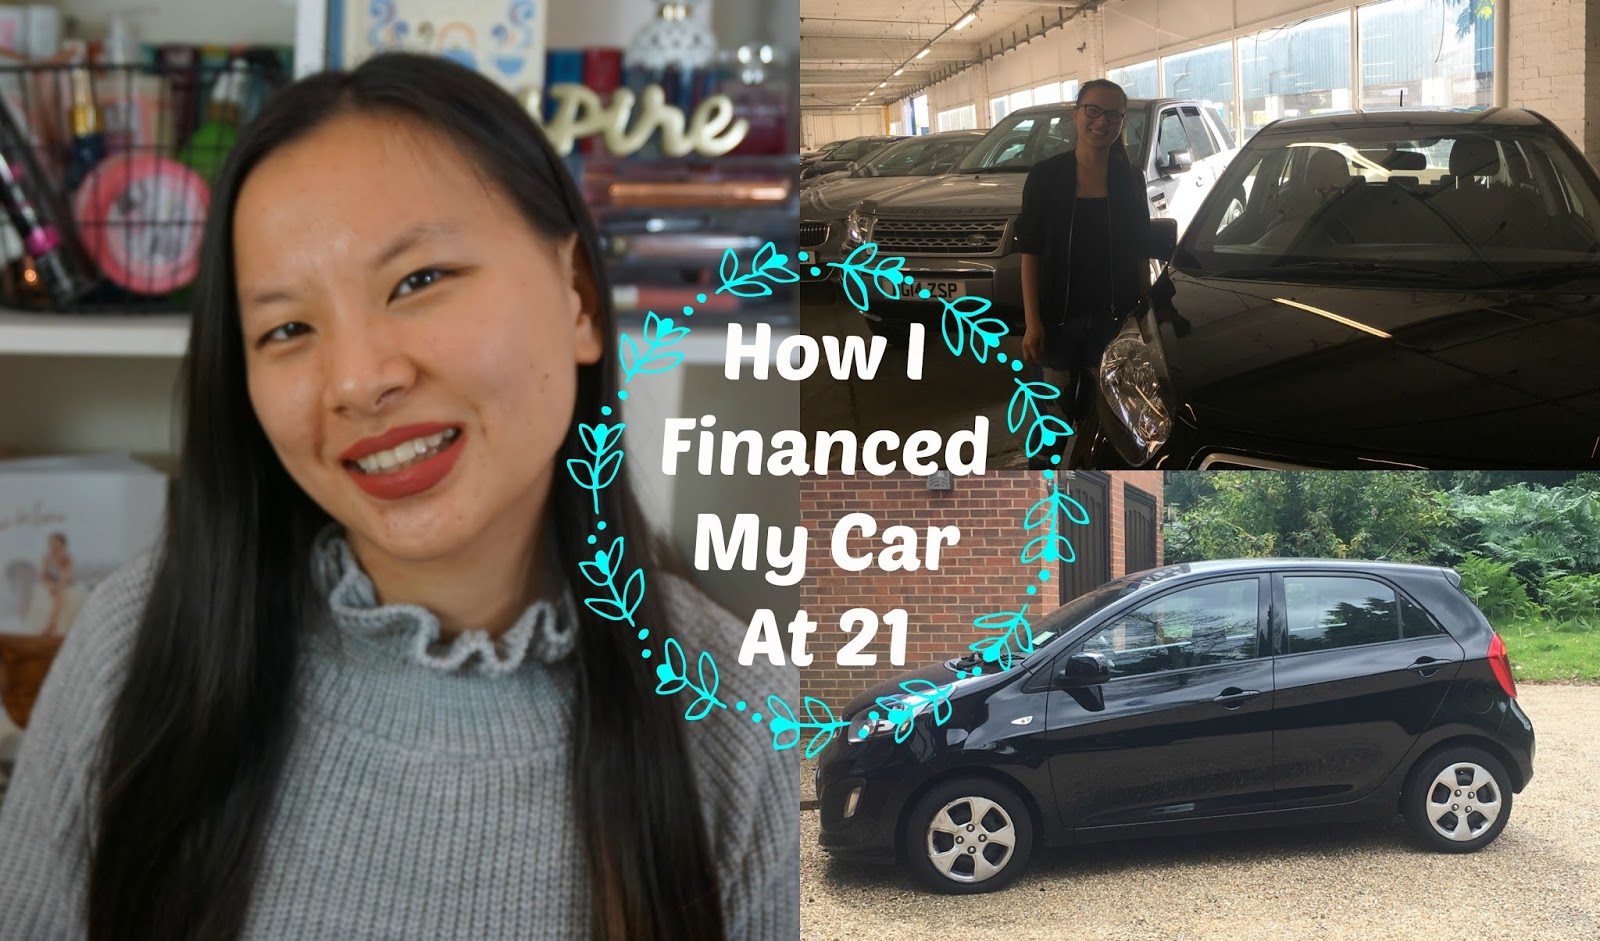 Video | How I Financed My Car At 21